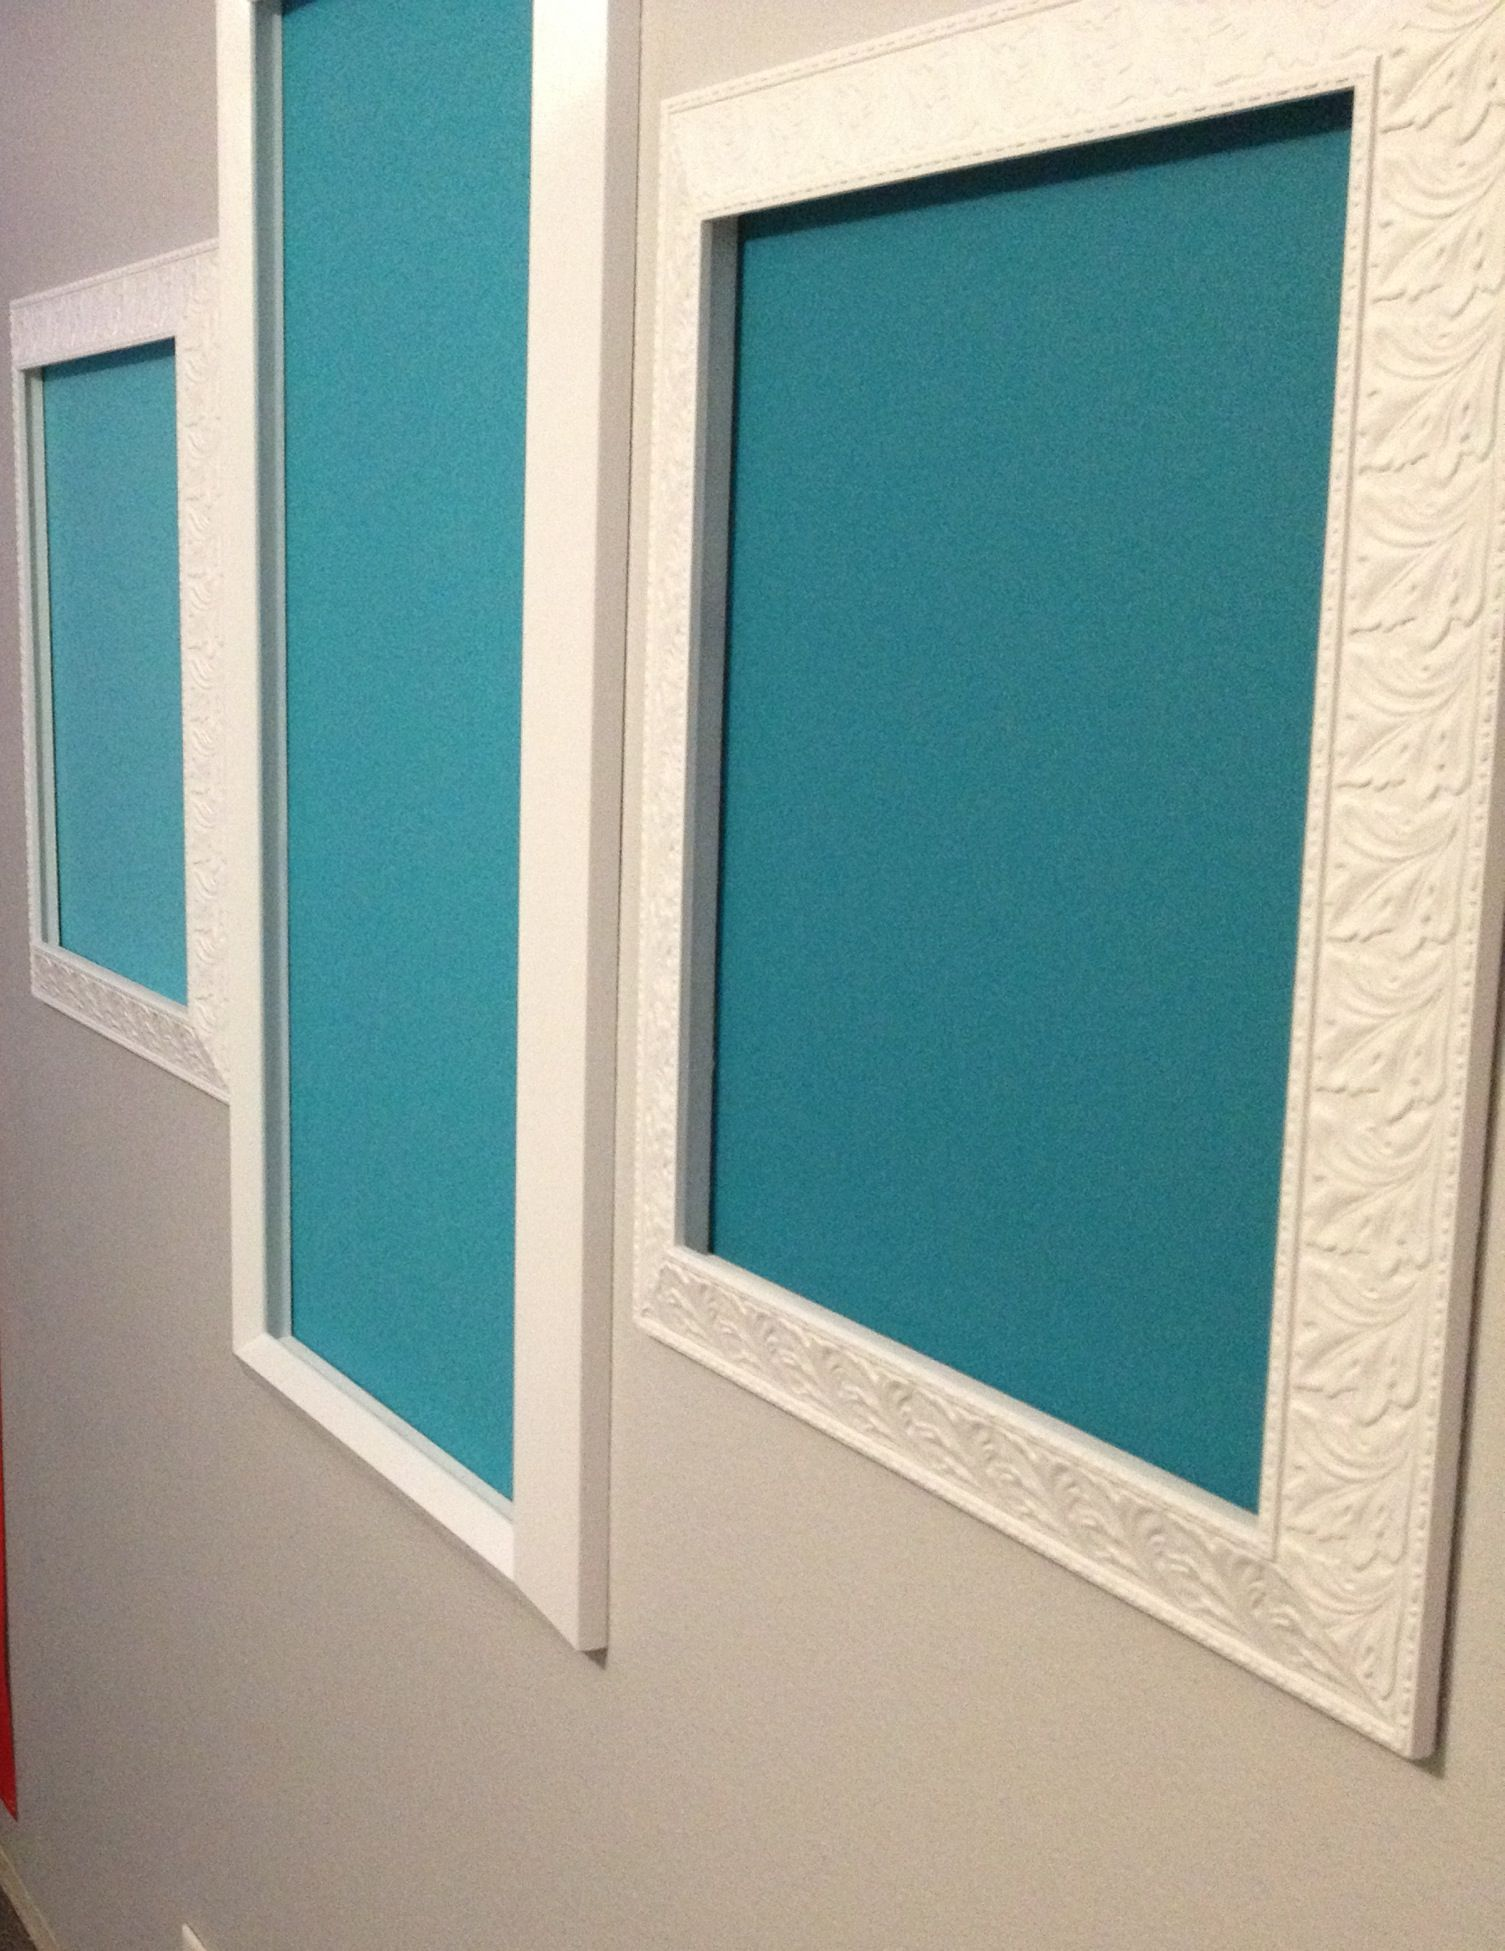 Chalkboard paint in ombré teal on wall - framed by repainted ...